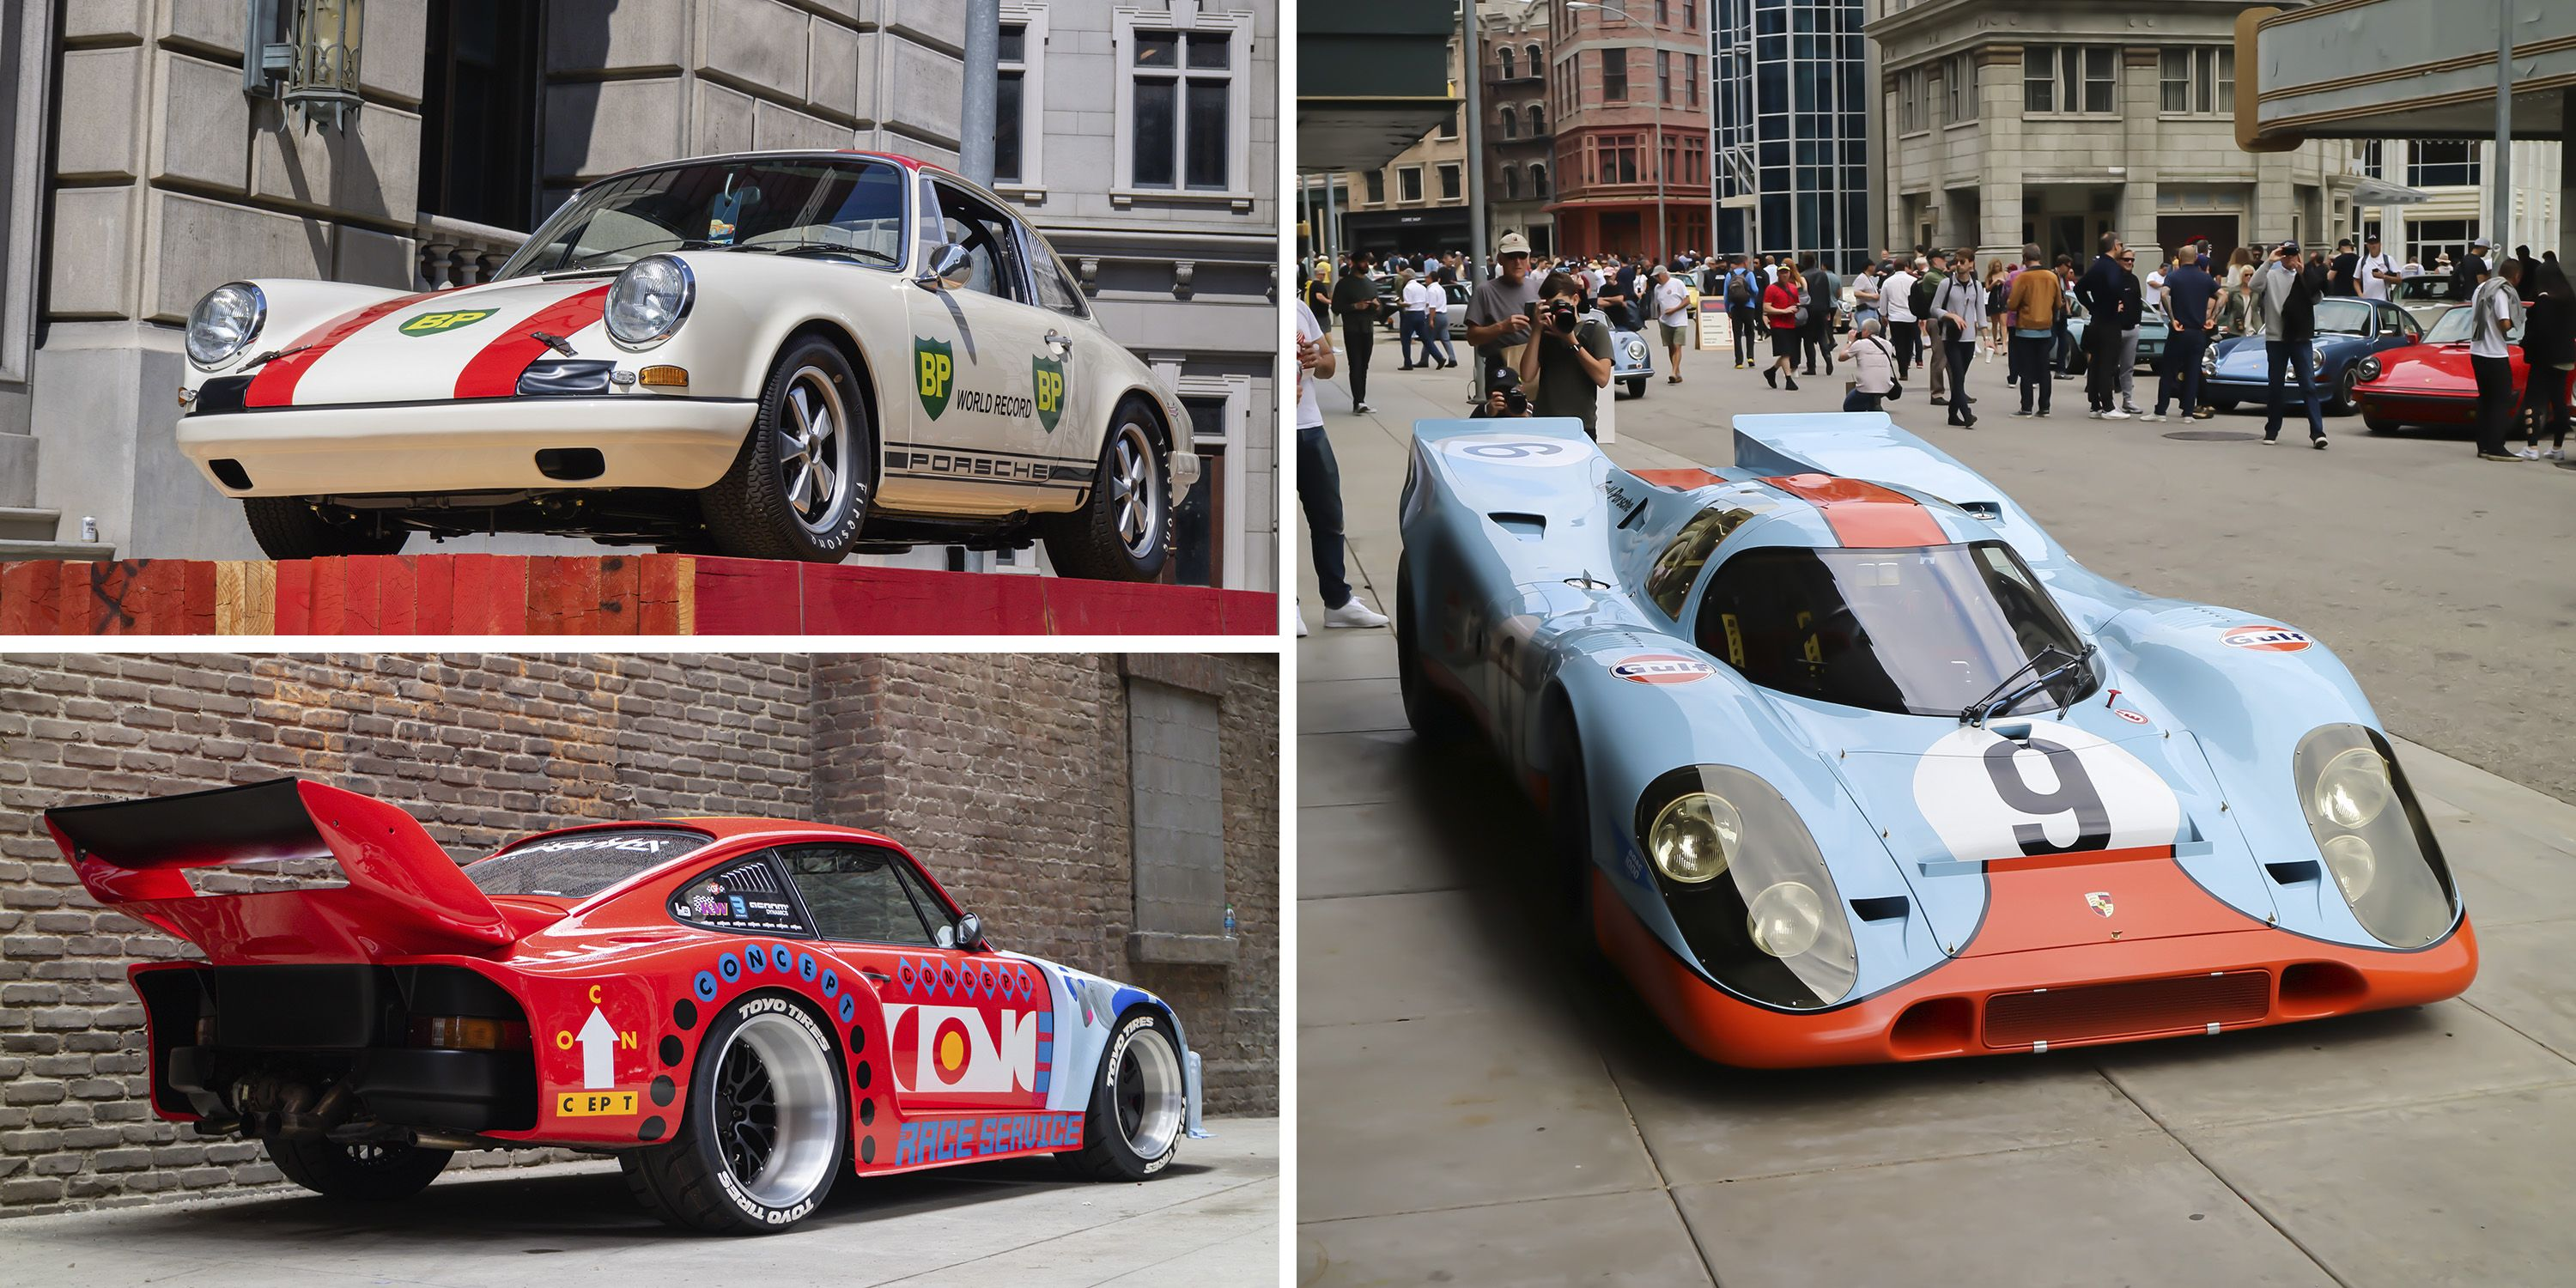 Luftgekuhlt 2019 In Photos 9 Of The Craziest Porsches At The Show